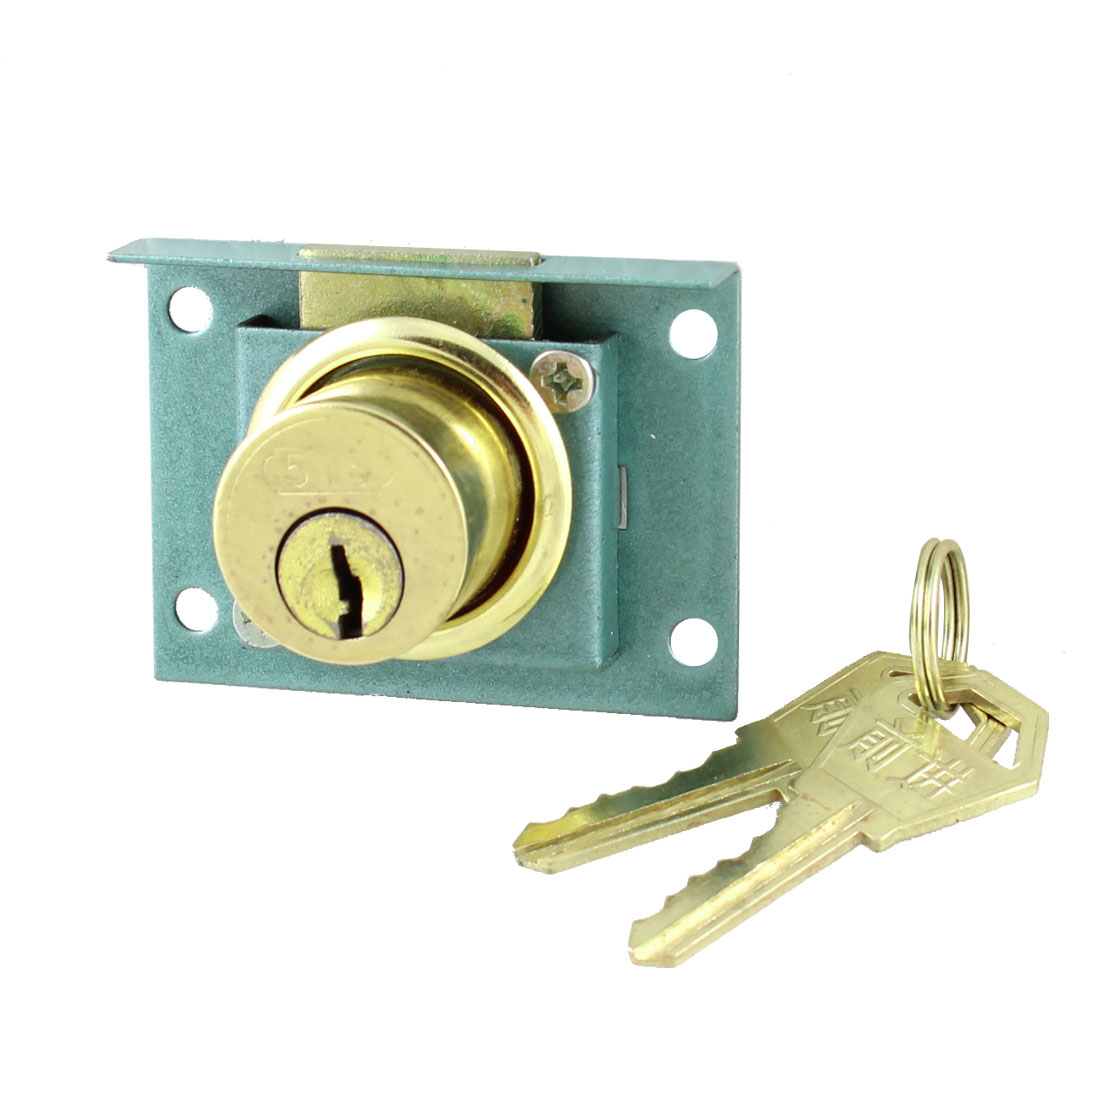 Gold Tone Metal Cylinder Head Cupboard Security Drawer Lock w 2 Keys